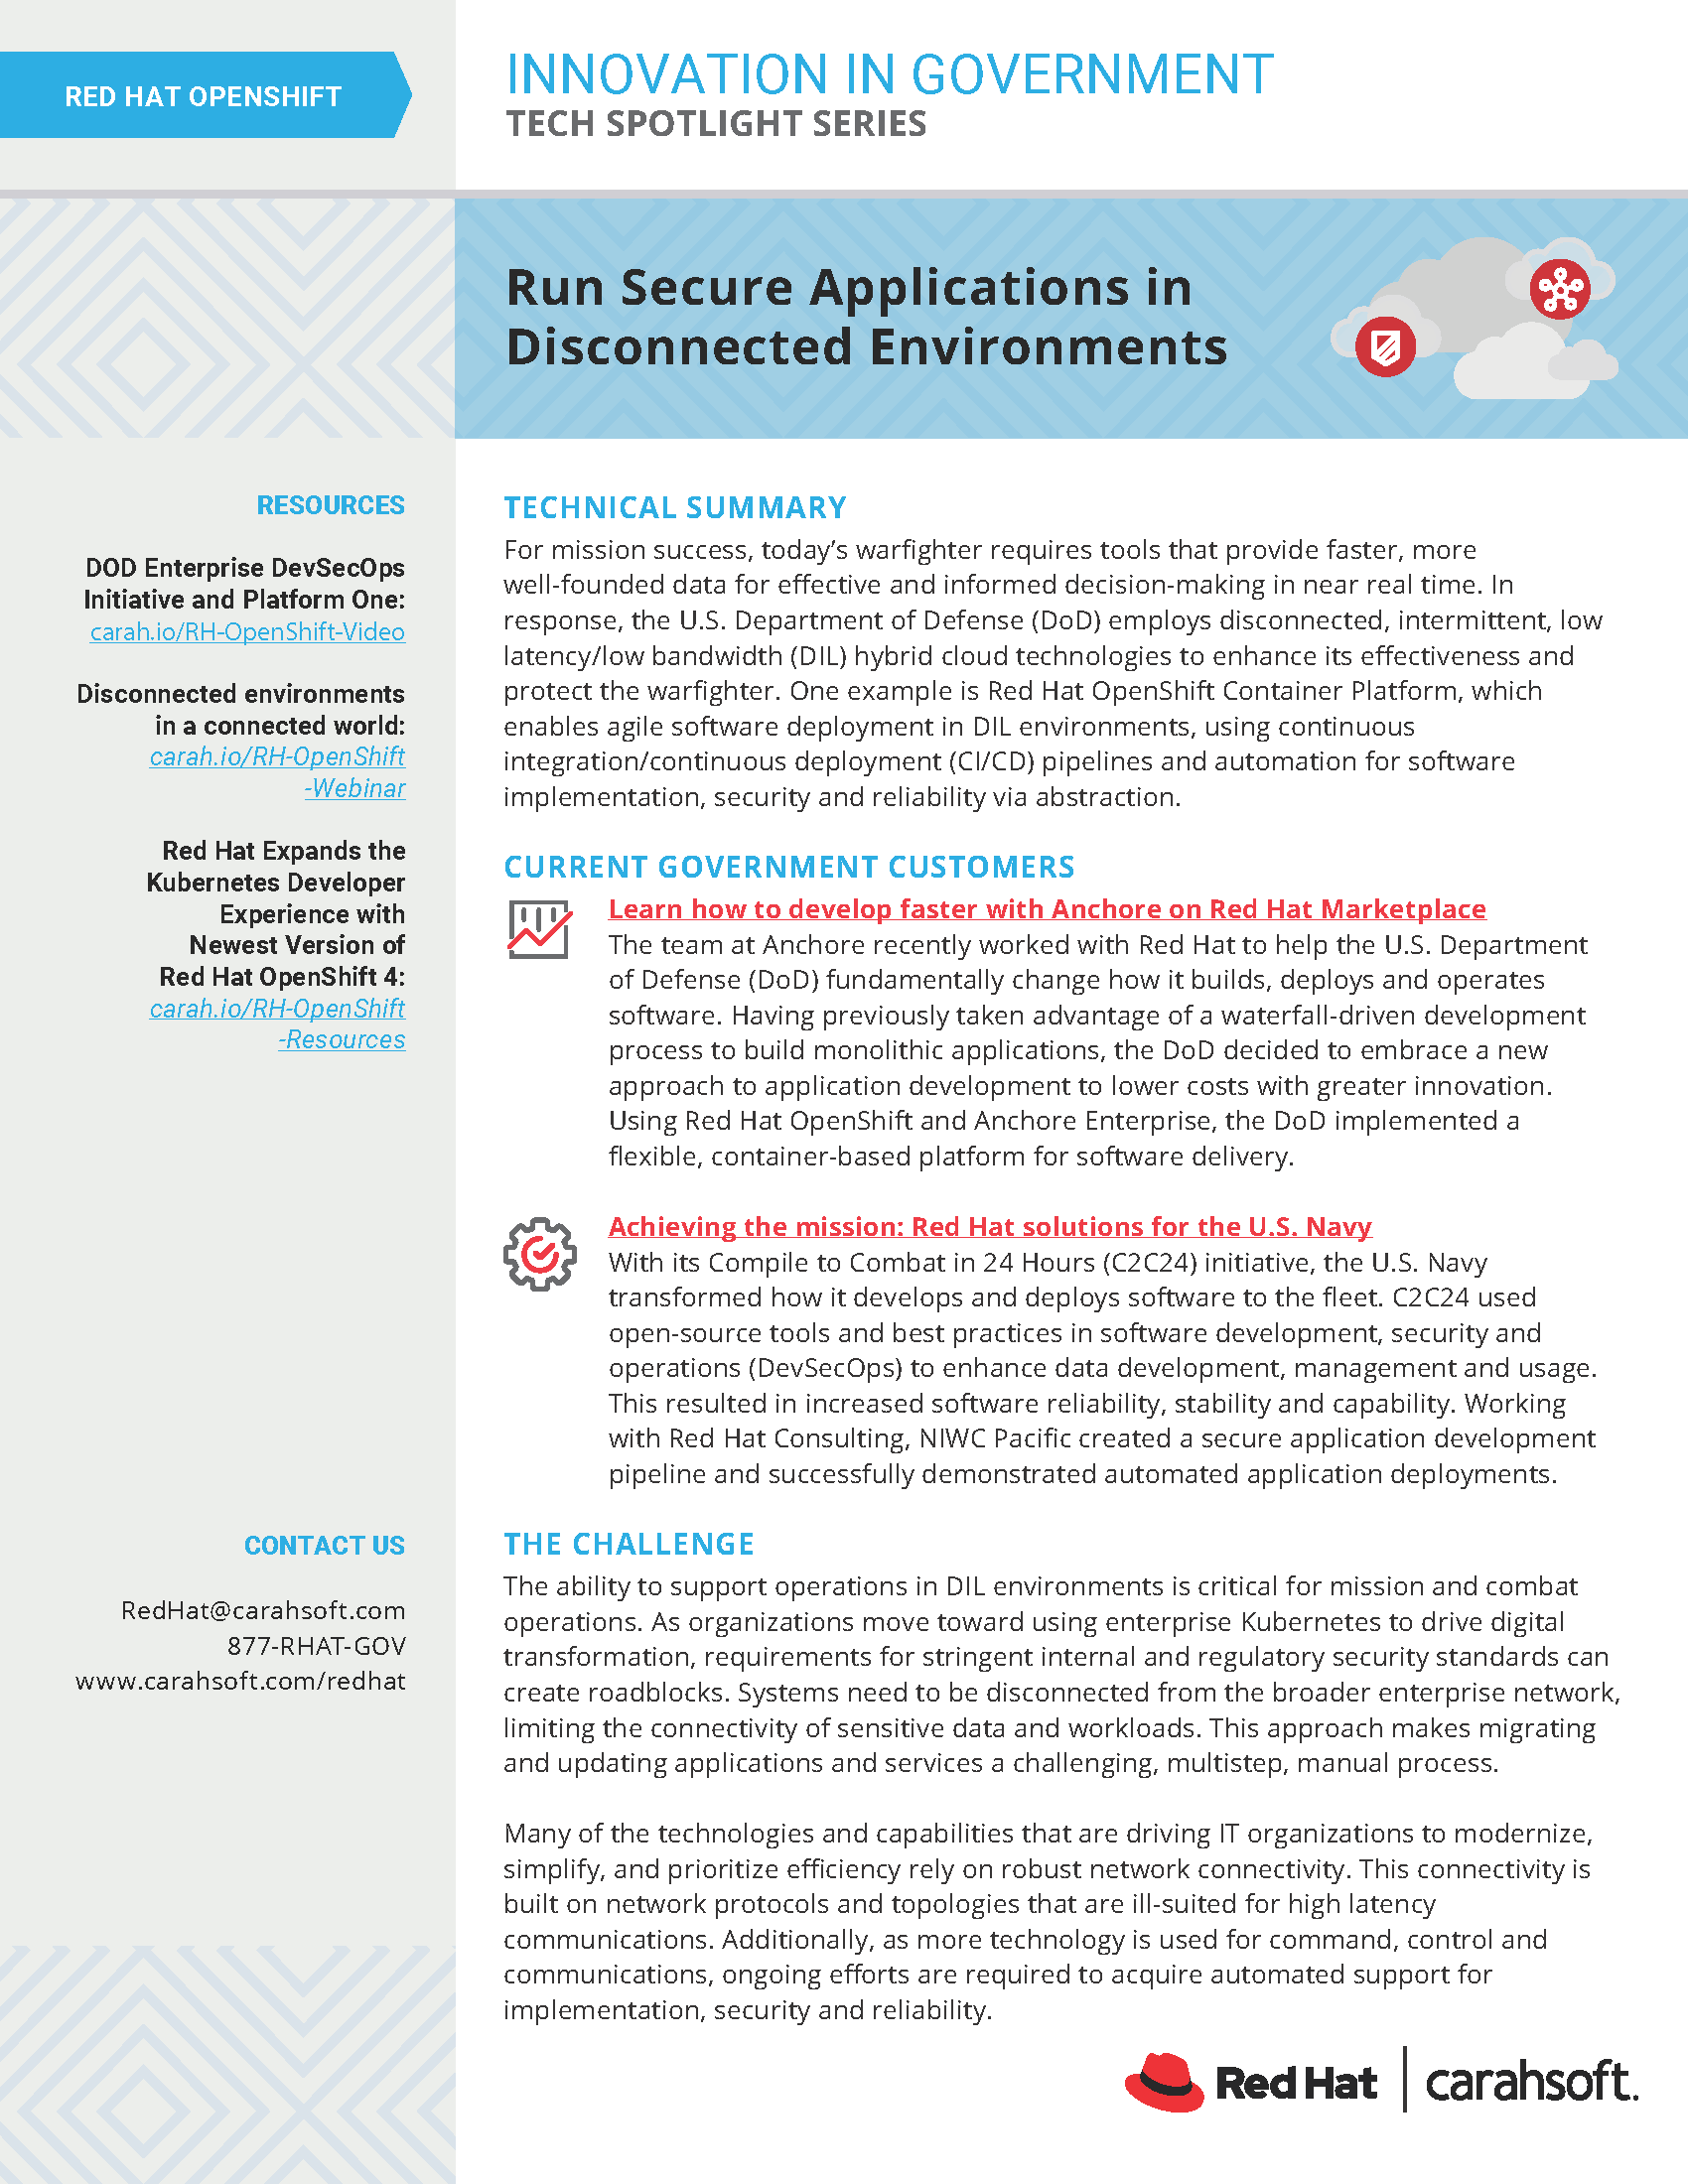 Tech Spotlight Red Hat OpenShift Container Platform Graphic